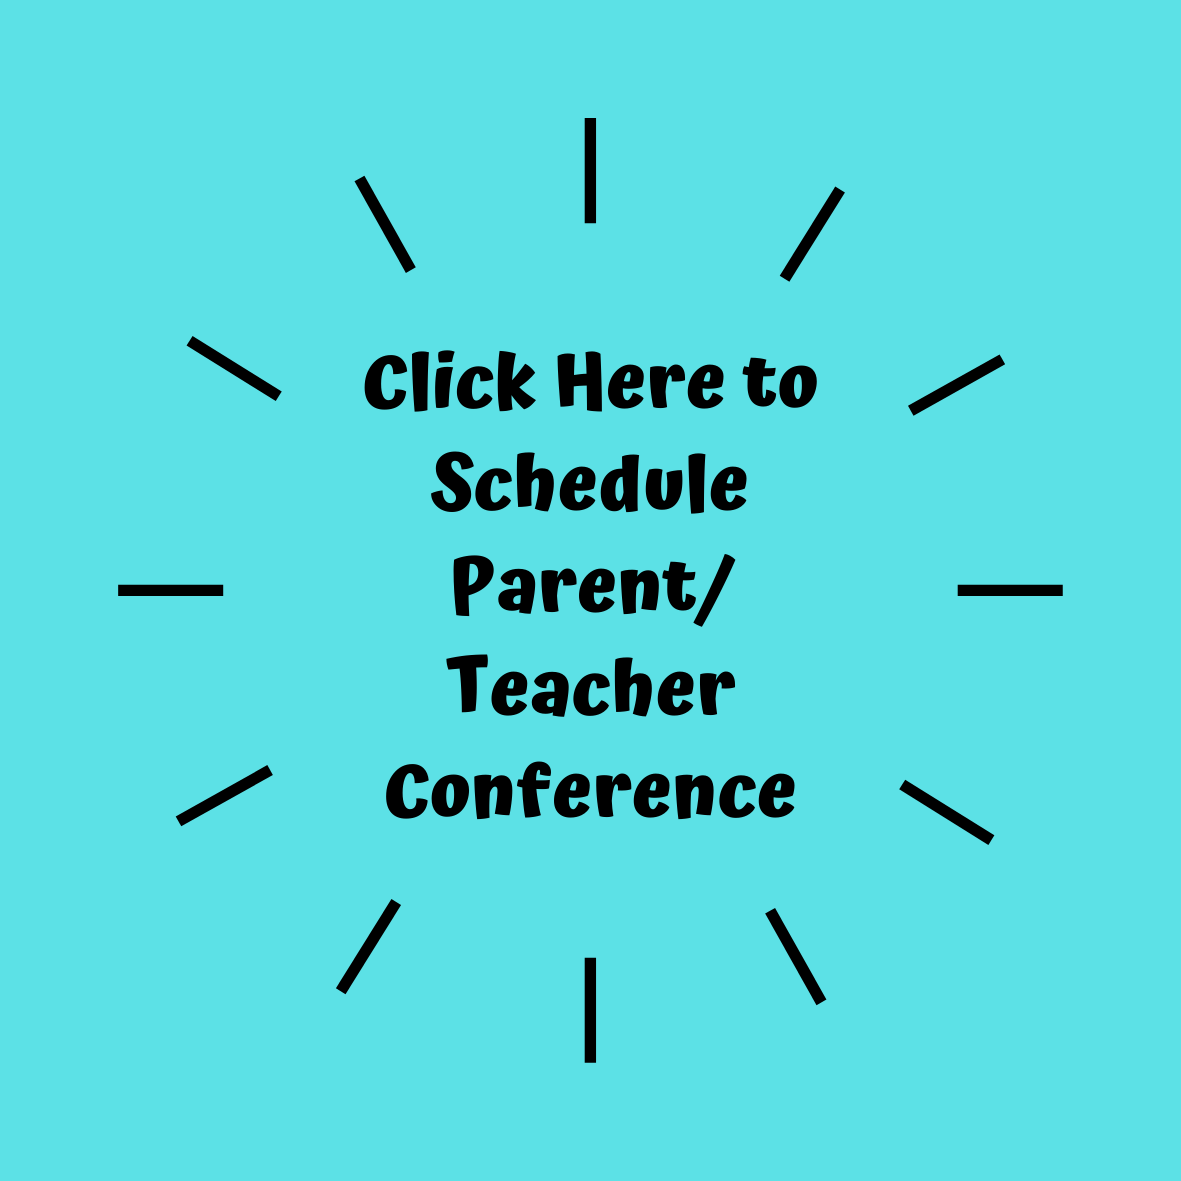 Click Here to Schedule Parent/Teacher Conference